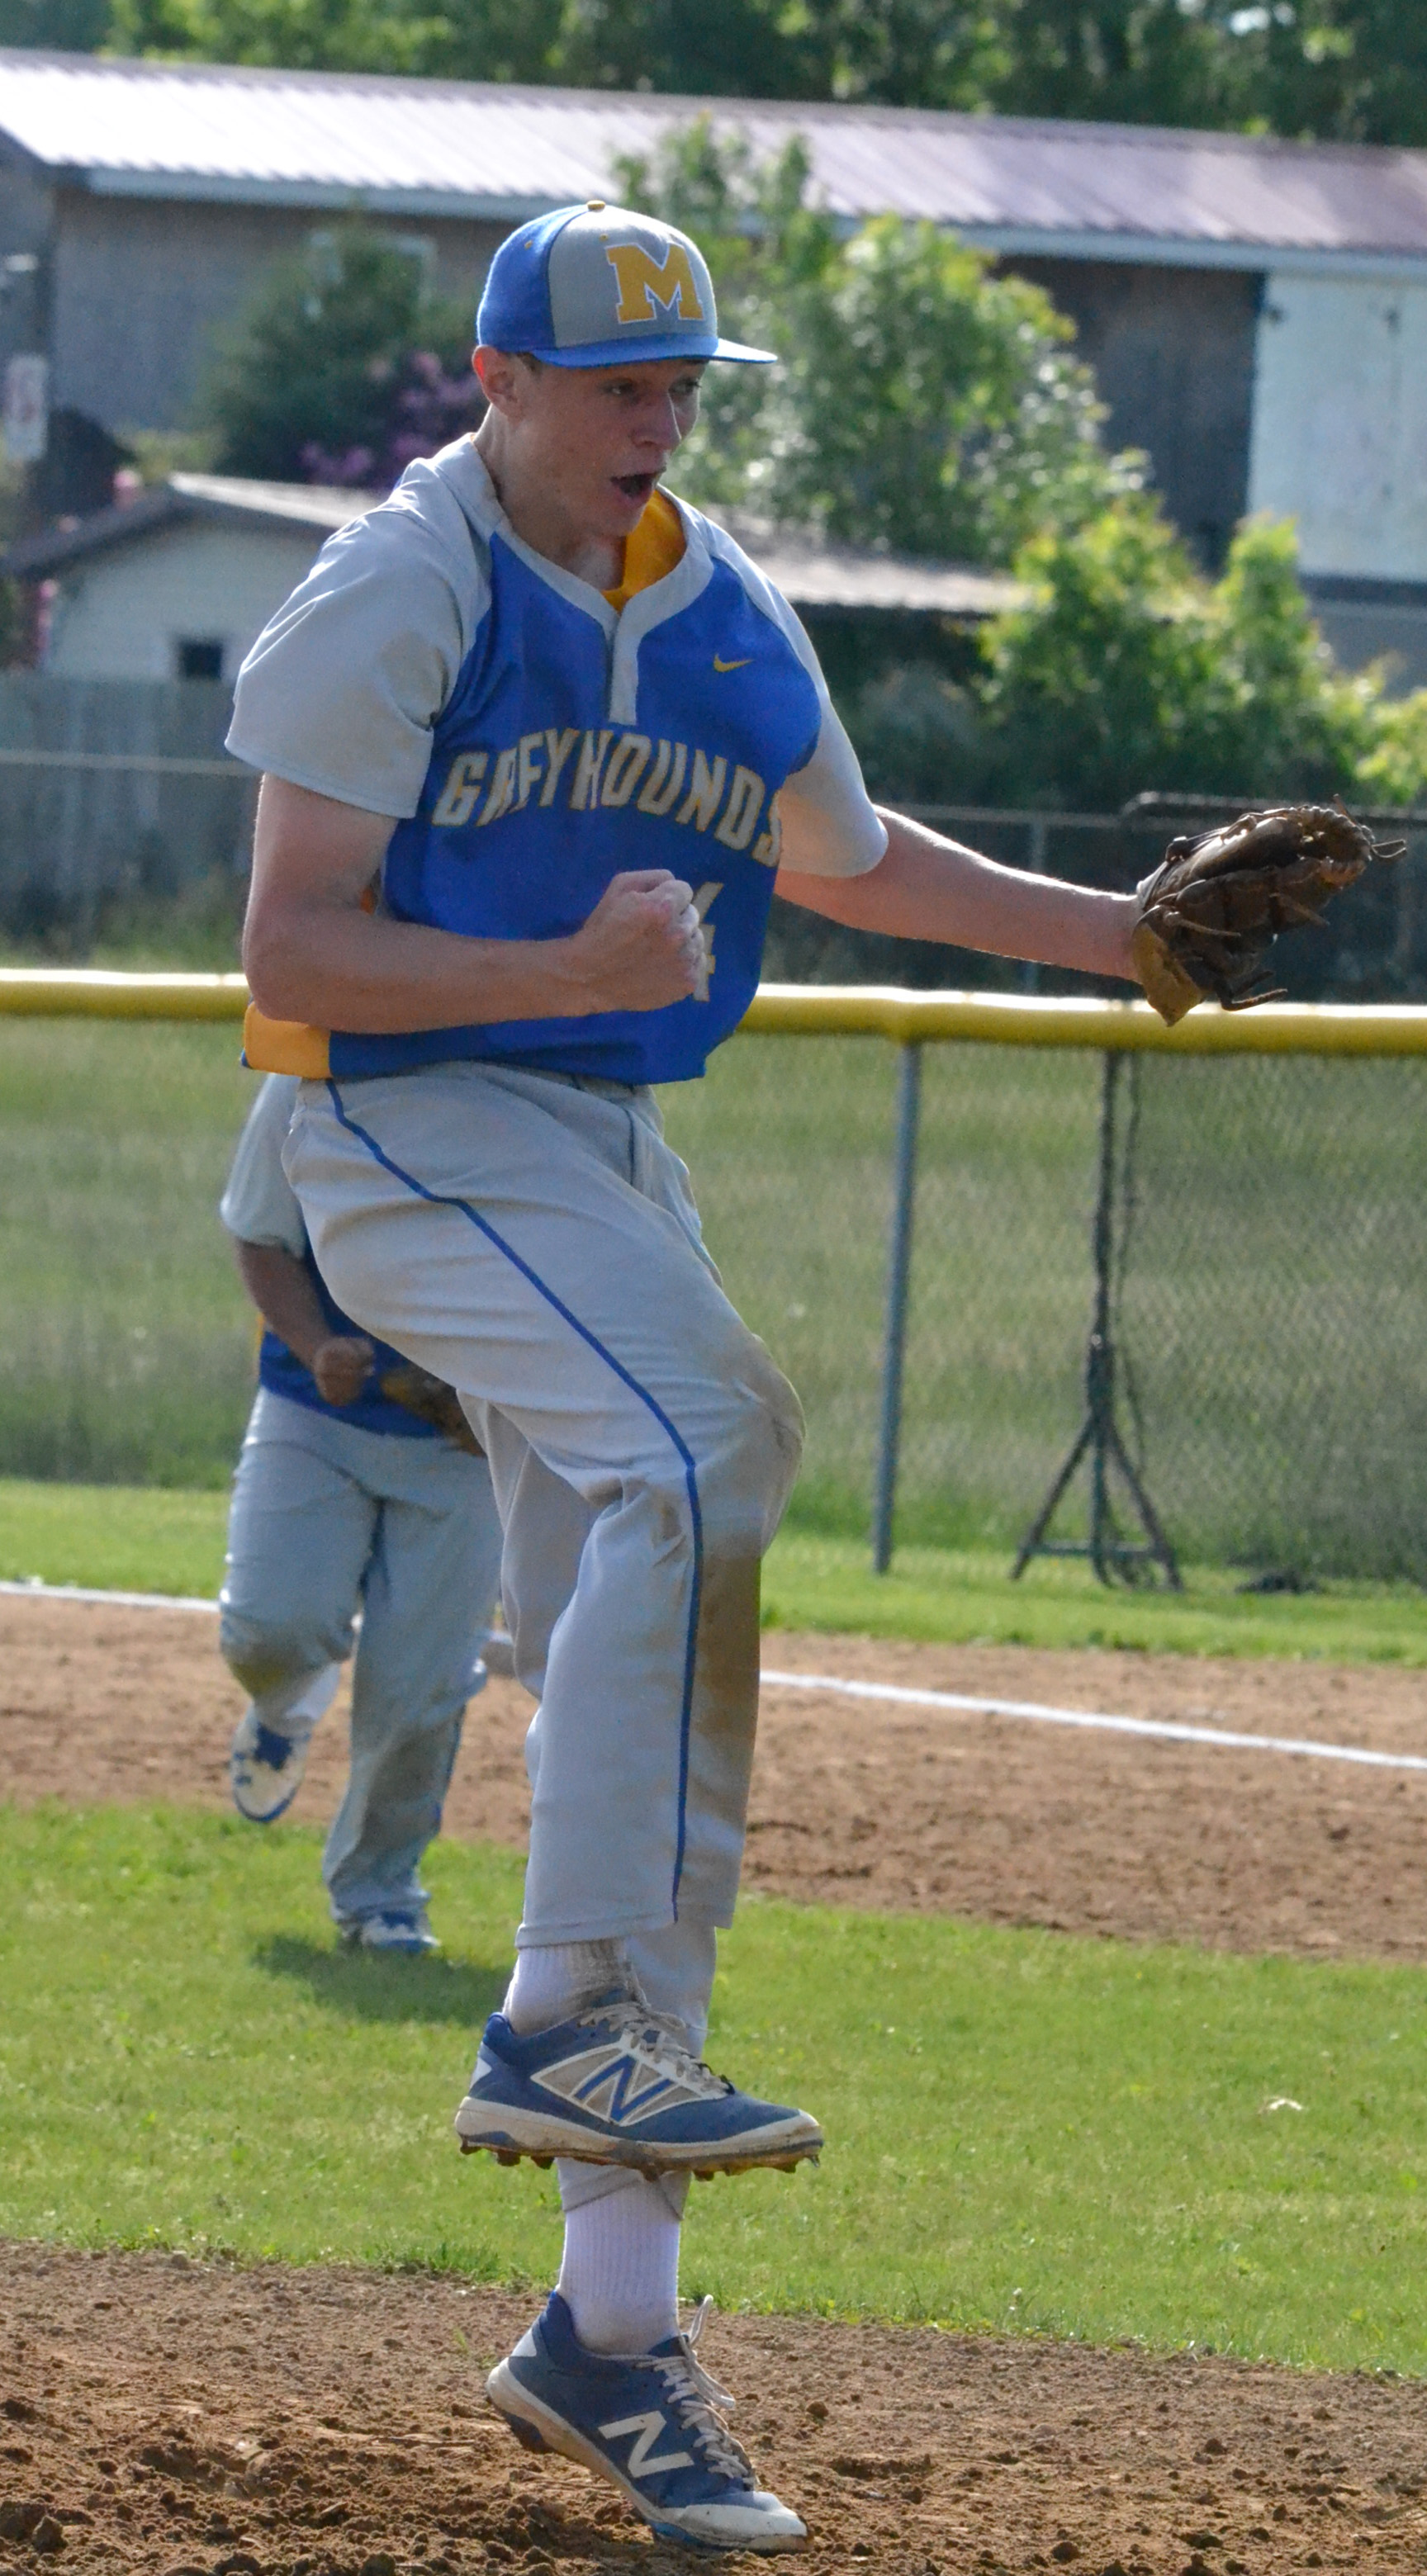 Manchester's Sean Frost celebrates after recording the final out in the Greyhounds' 1-0 sectional title win over Green.  Photo by Mark Carpenter.